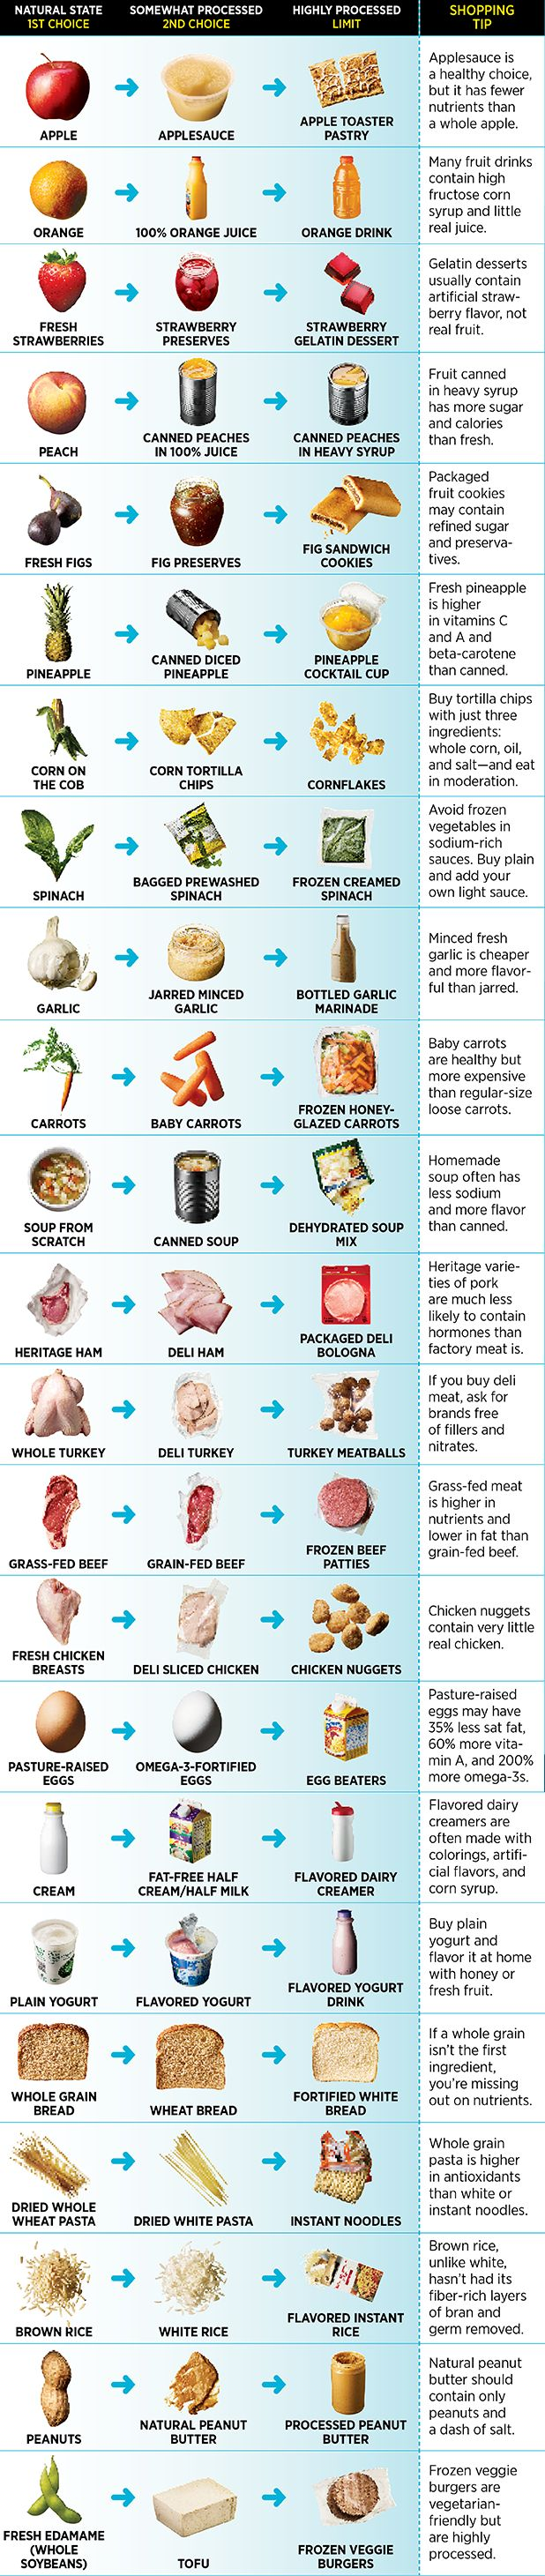 If you're trying to eat clean, you need this chart of the 23 cleanest foods you can buy and their not-so-clean counterparts.